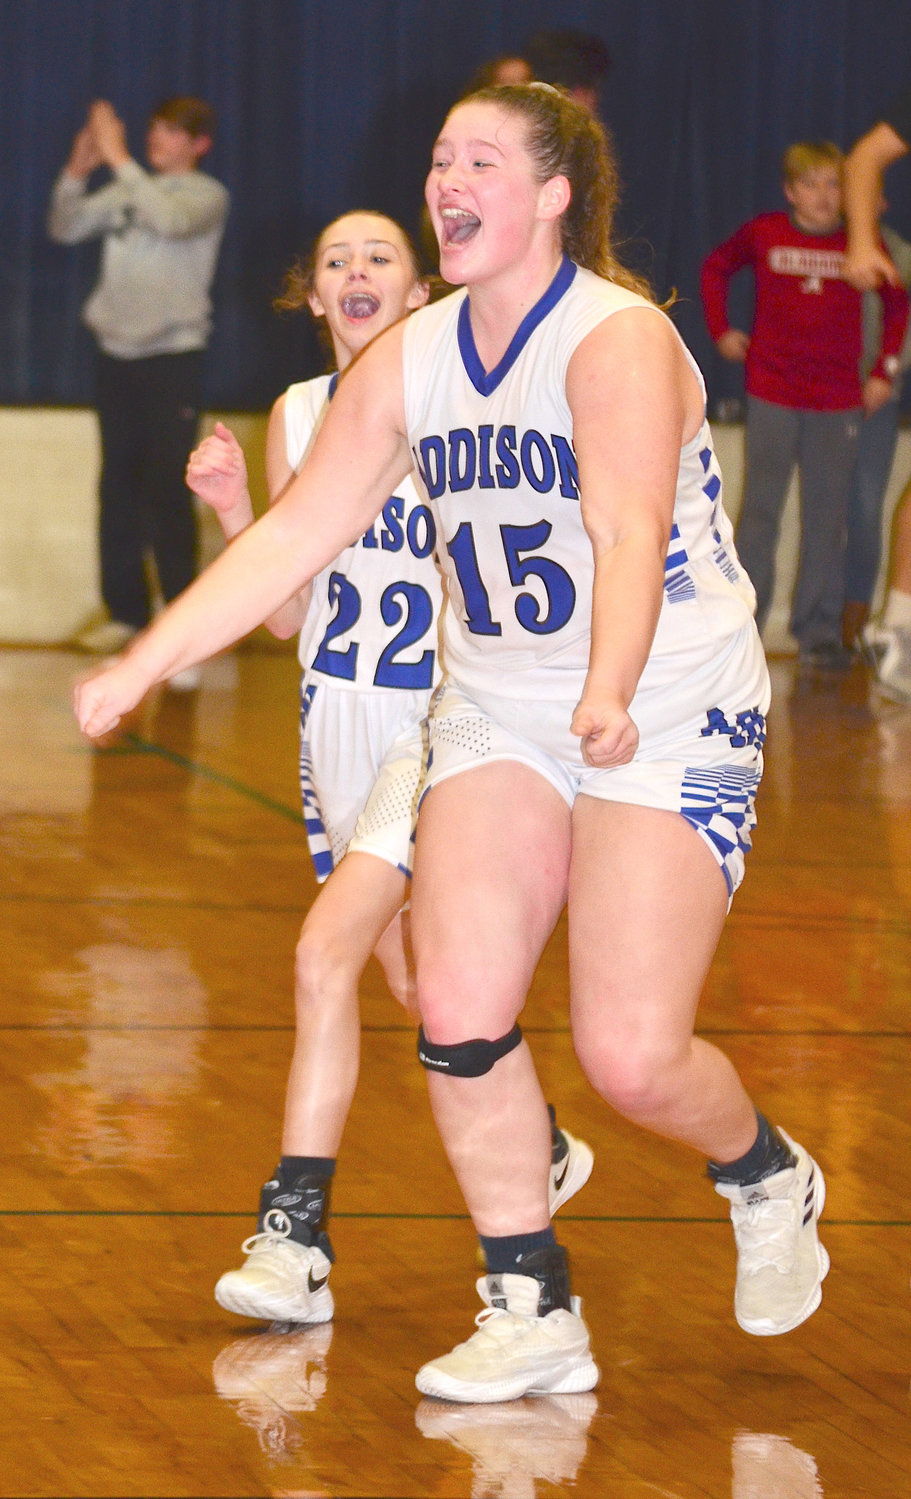 Addison's Savannah Manley (15) and Bracie Rodgers (22) celebrate Monday's win over Sulligent on Monday.